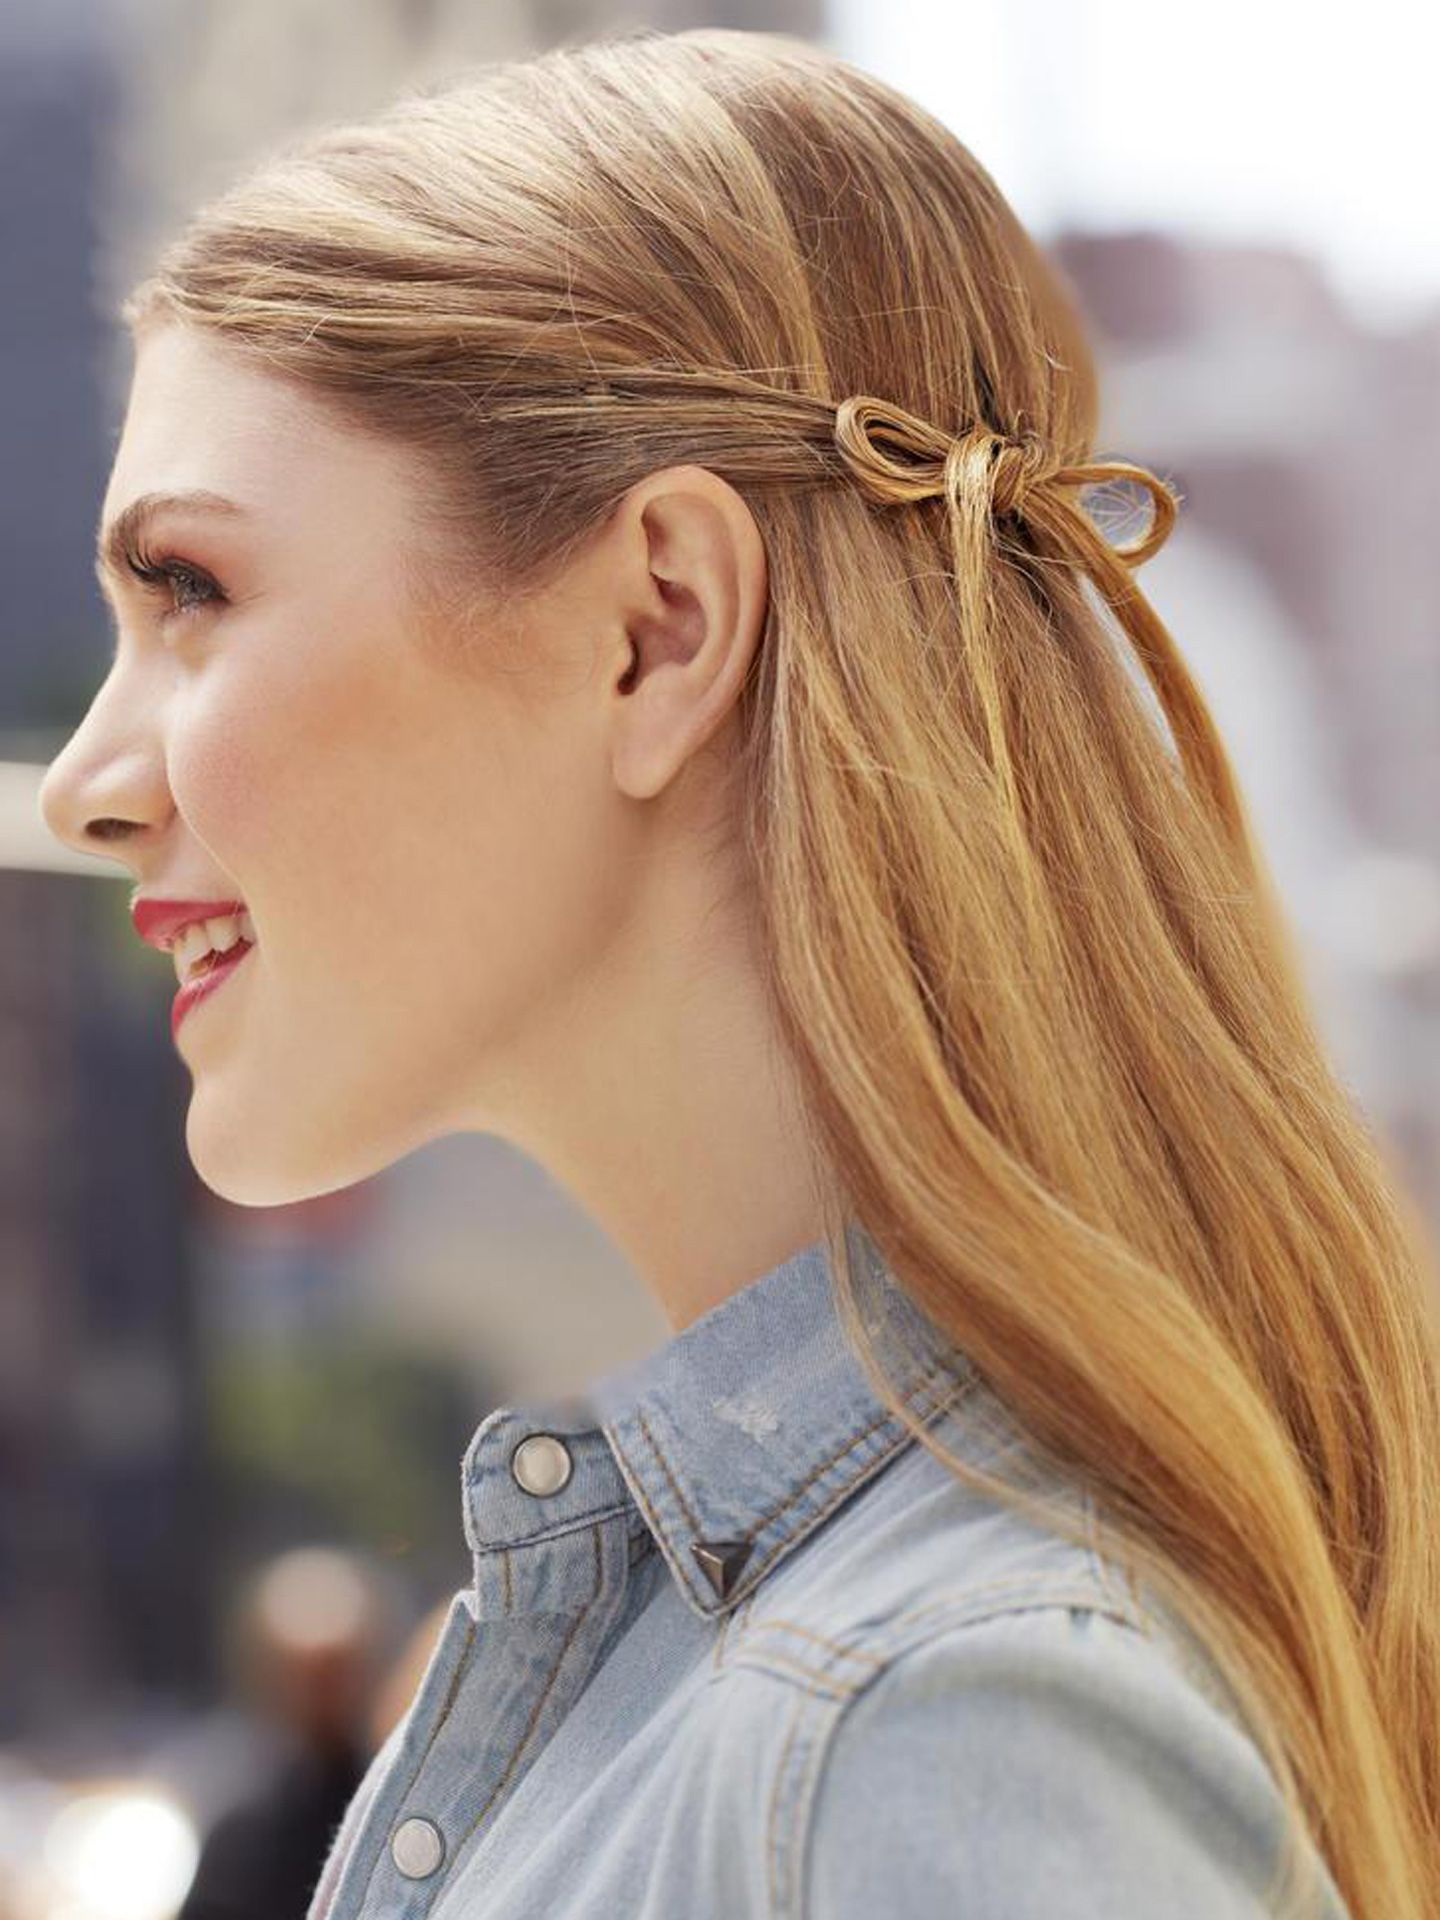 16 Epic New Year S Eve Hairstyle Ideas Hair Inspiration For Nye 2018